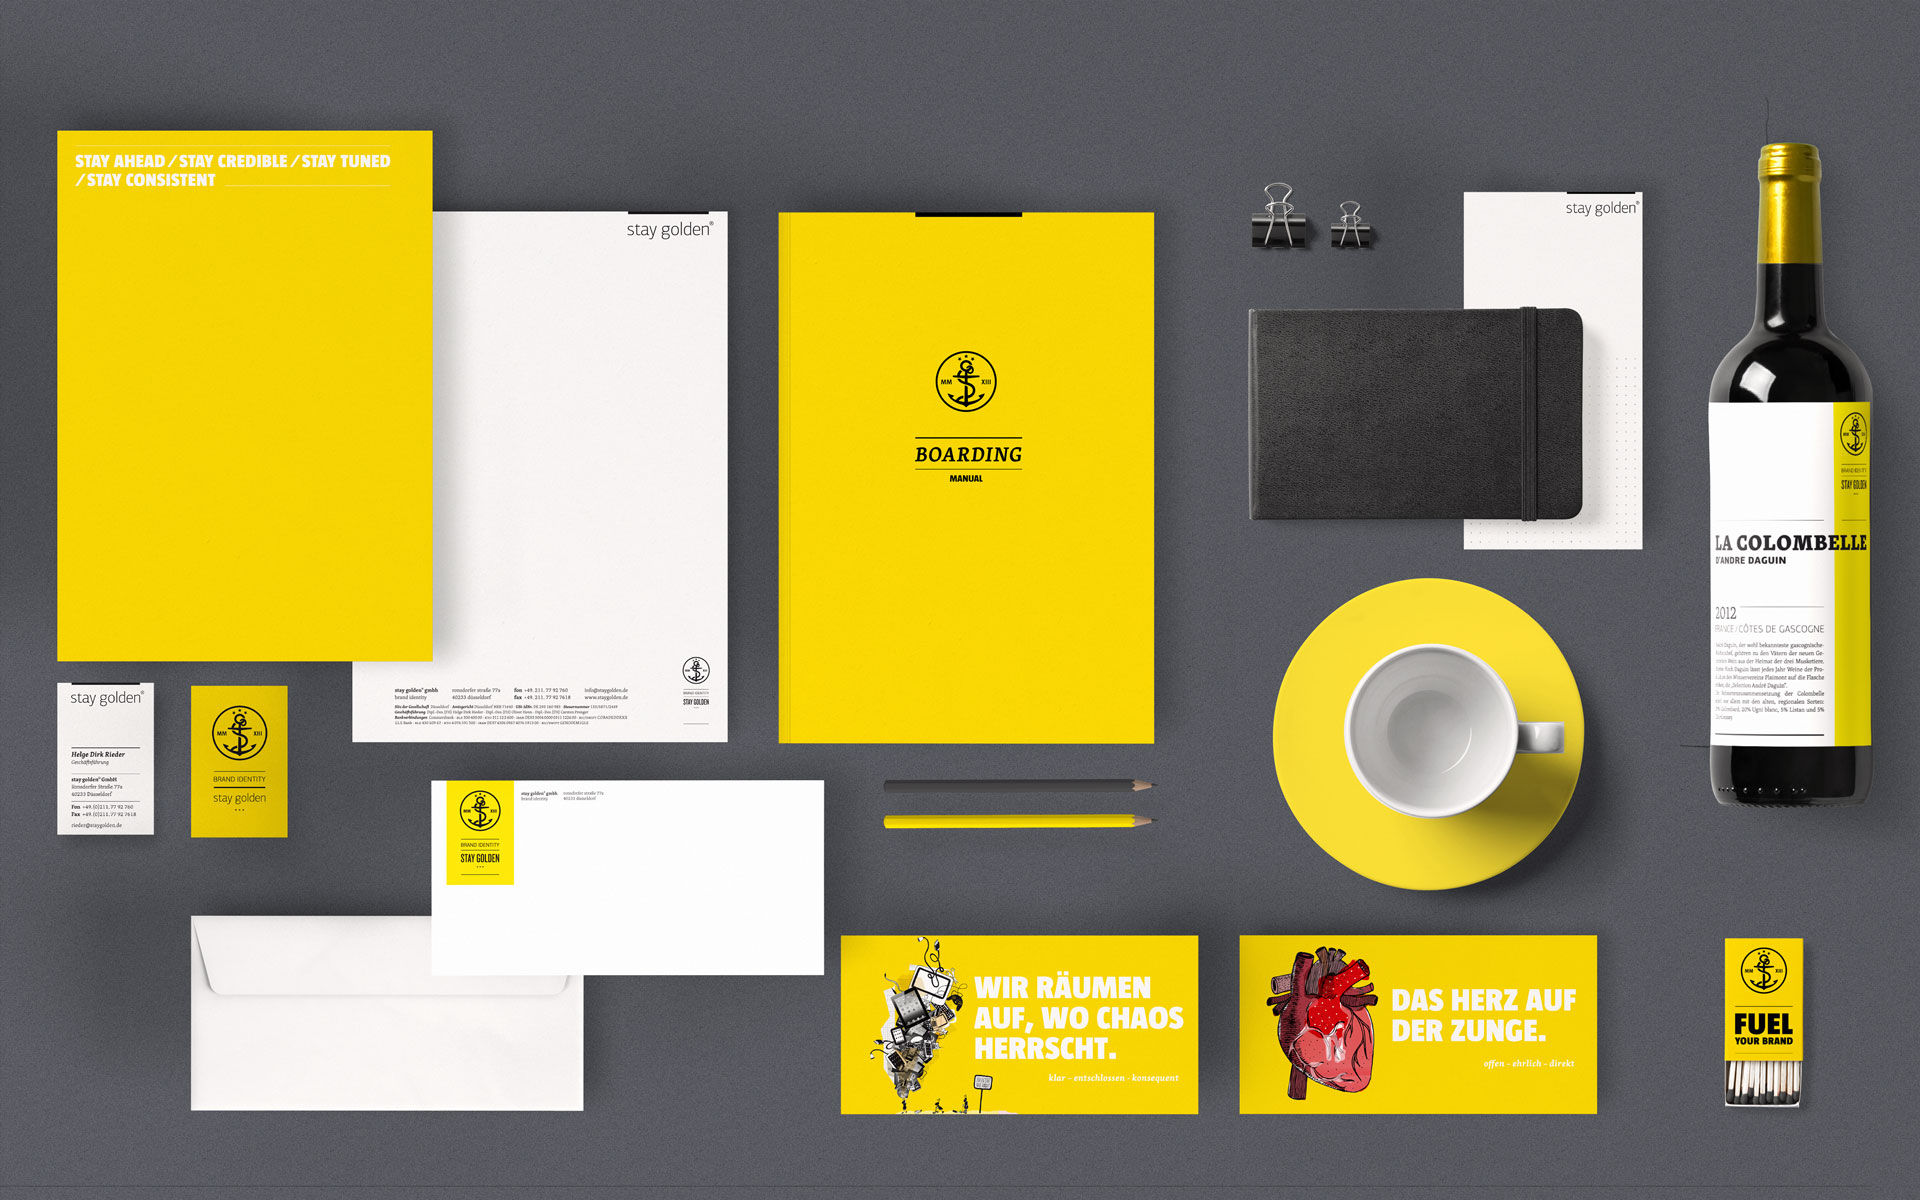 stay golden Brand Identity, Corporate Design, Geschäftsausstattung